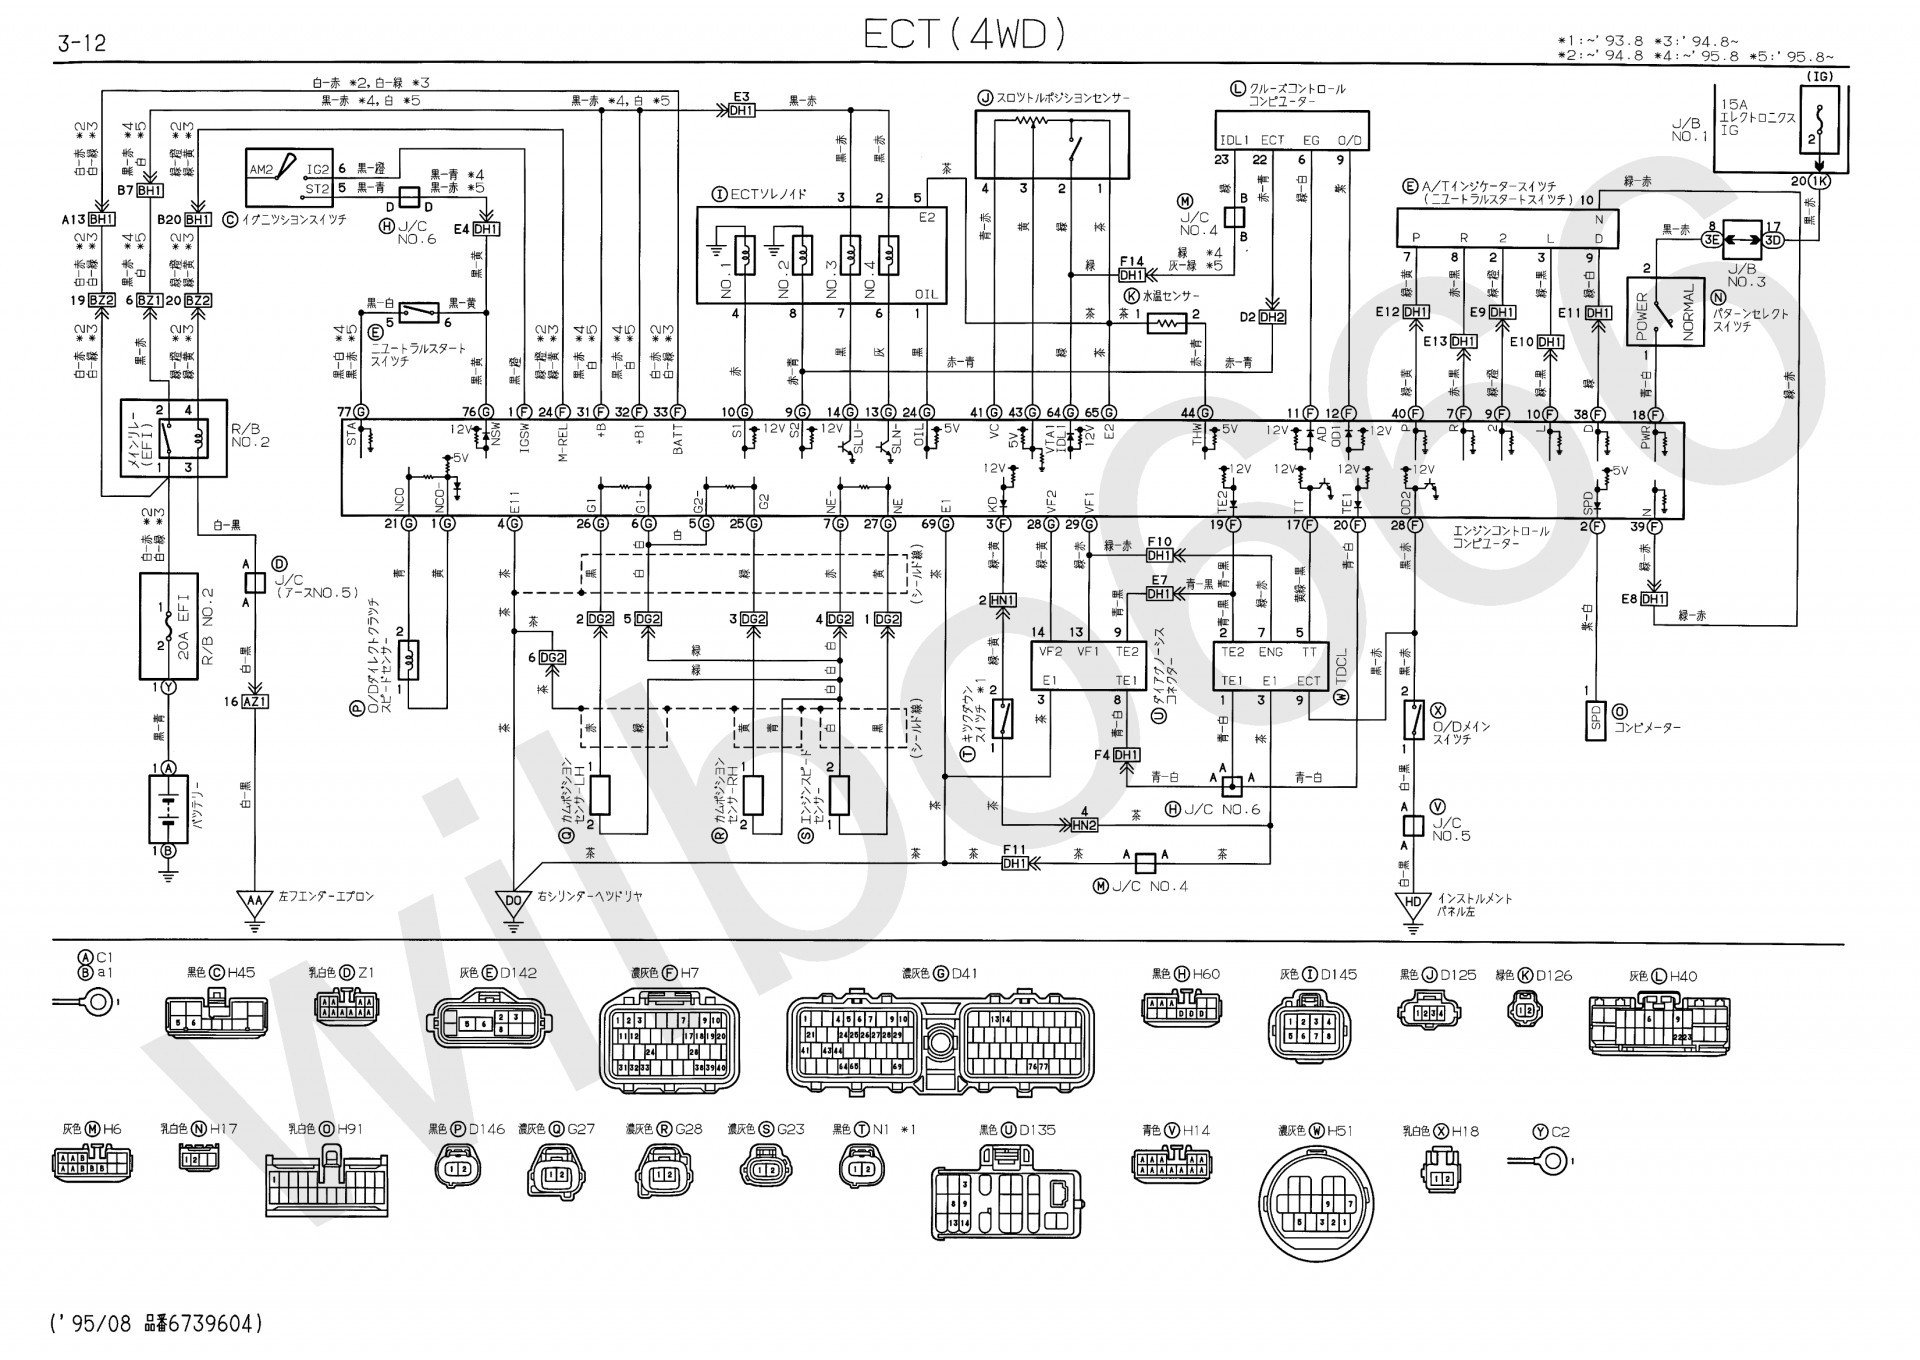 2003 Vw Jetta Engine Diagram Trusted Wiring Diagrams Volkswagen Diesel My Rh Detoxicrecenze Com